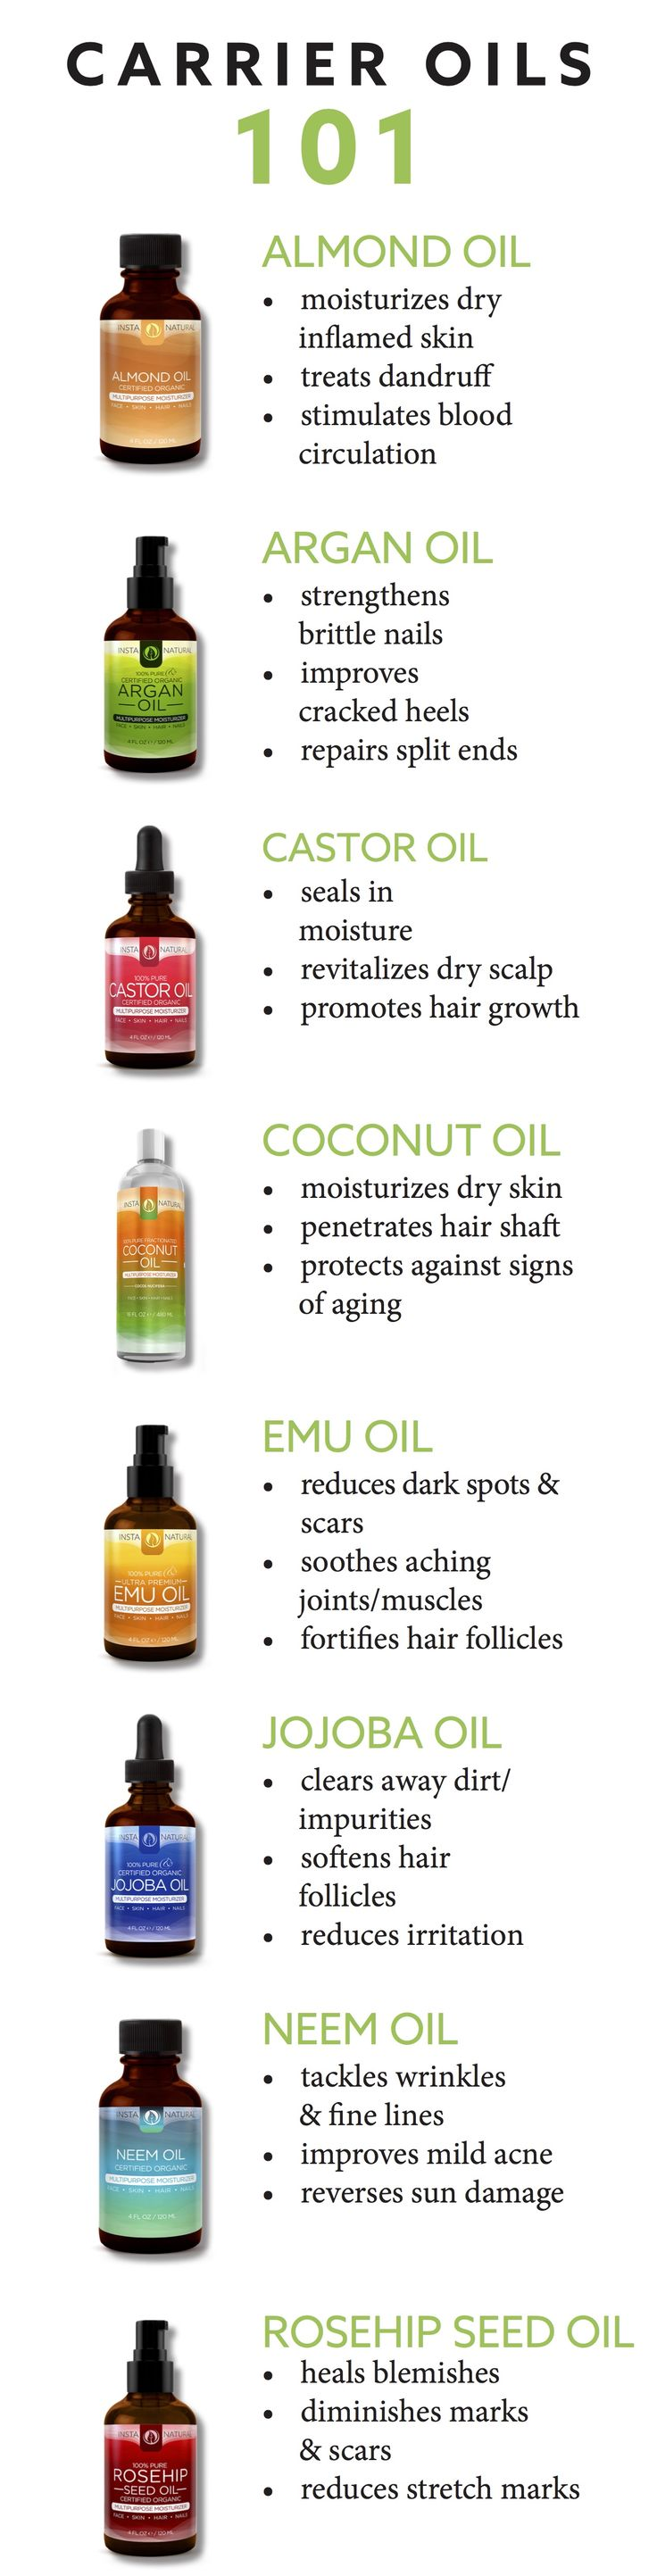 Discover the benefits of Carrier Oils!